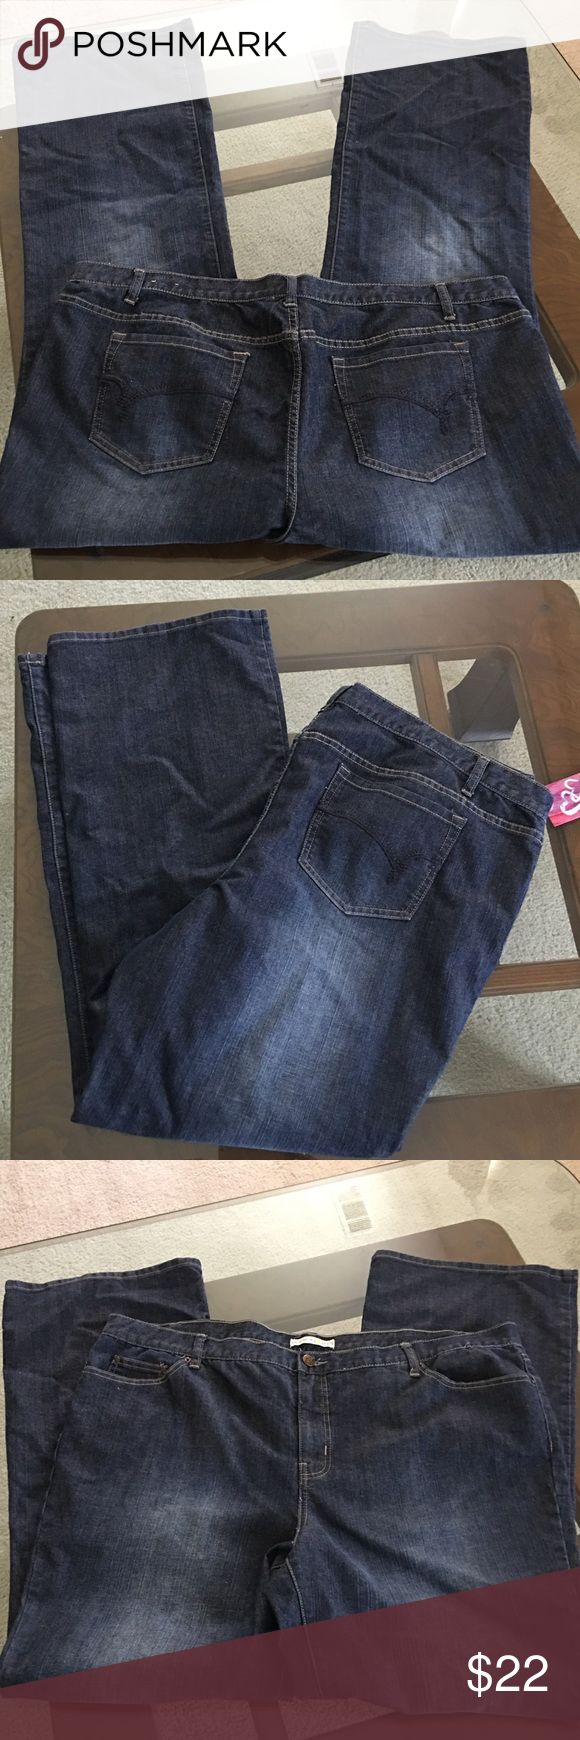 "Fashion Bug plus sz 28 Tall jeans boot stretch Fashion Bug plus sz 28T Tall jeans, boot cut, stretch cotton/poly/spandex, waist = 46"" inseam = 34.5"". Excellent condition. Fashion Bug Jeans Boot Cut"